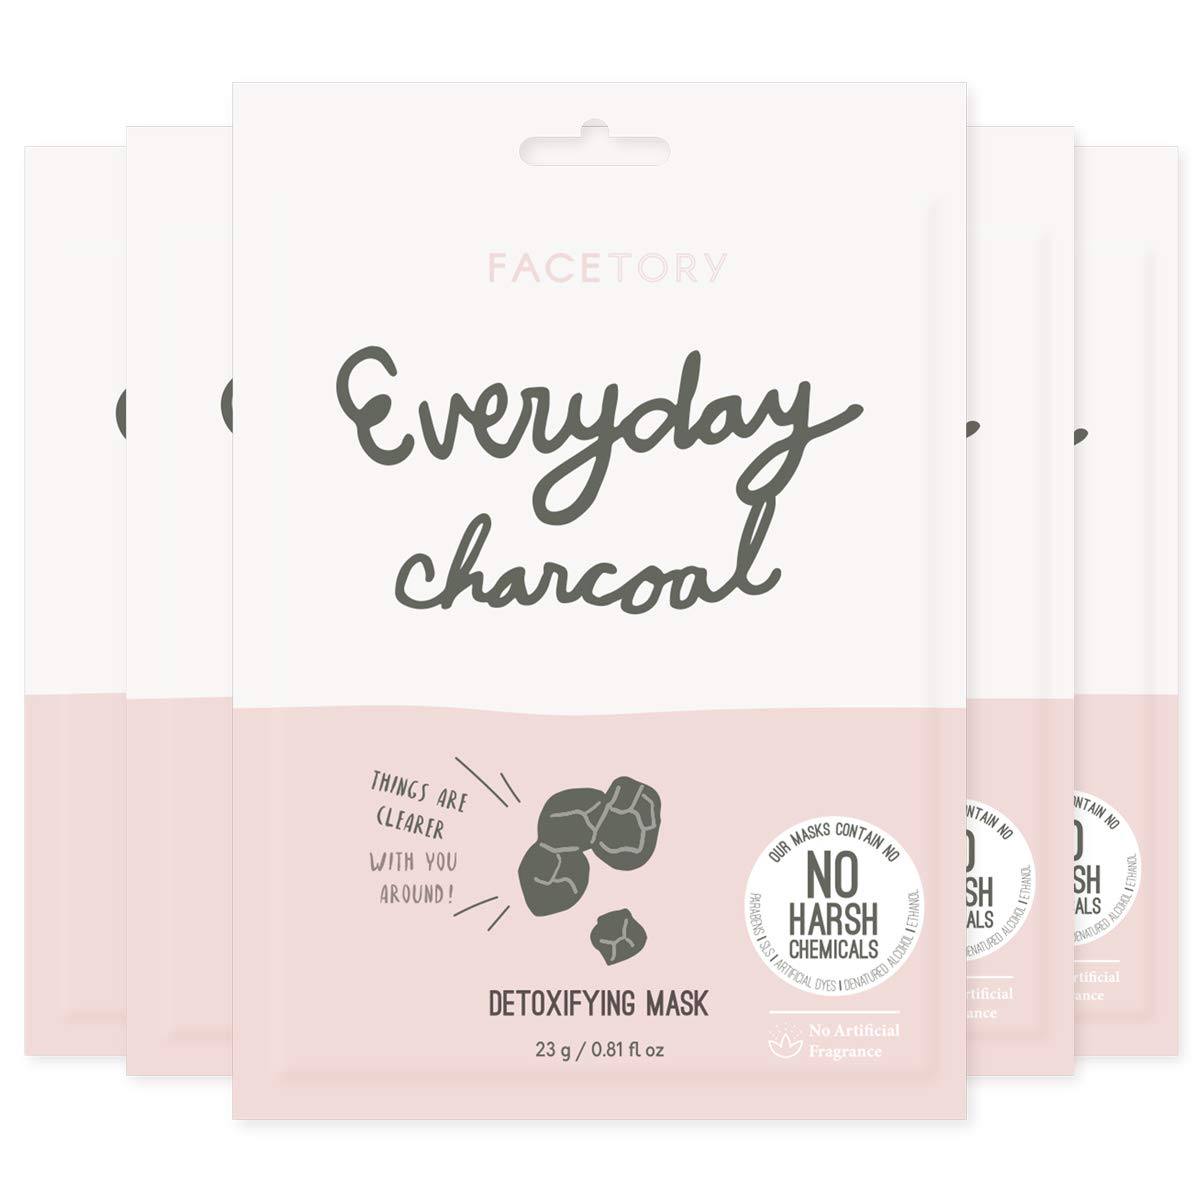 Everyday Charcoal Detoxifying Mask With No Harsh Chemicals - Clarifying, Oil Controlling, and Hydrating (Pack of 5)